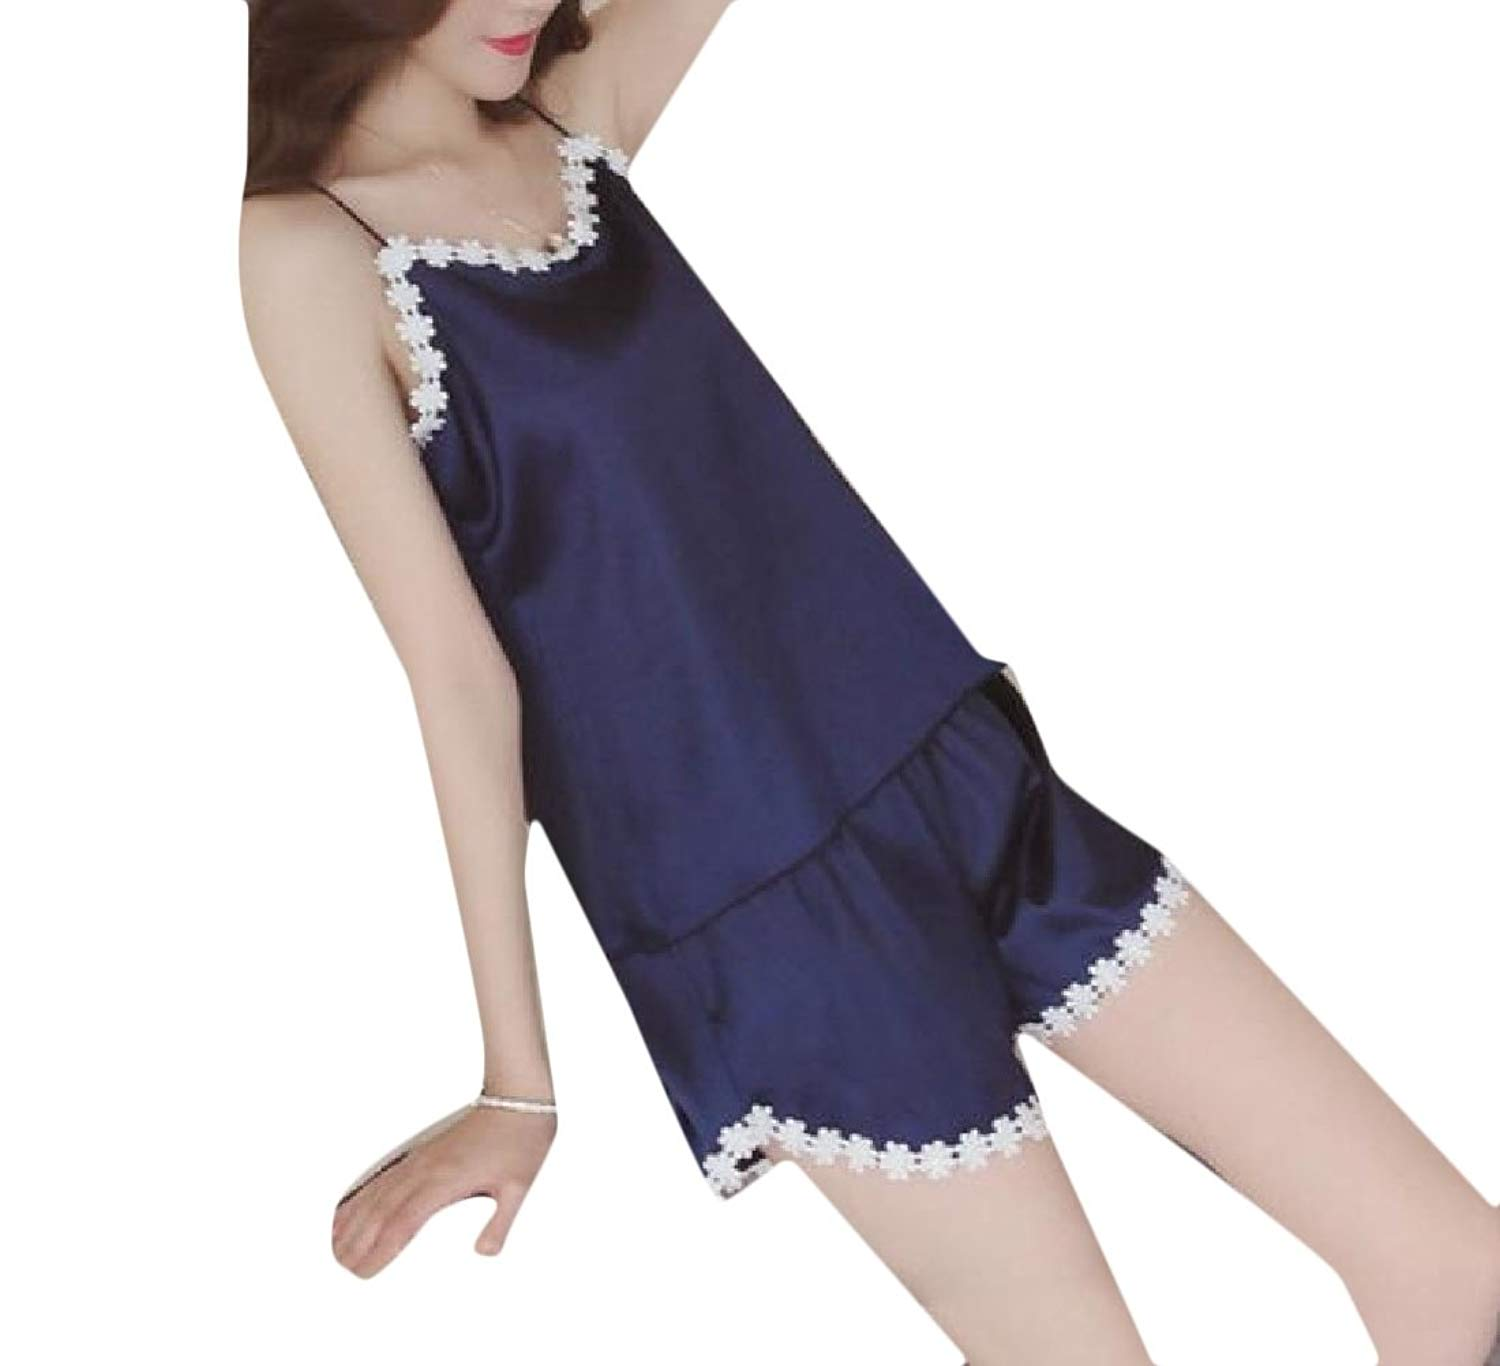 547e481081a Get Quotations · Tootless-Women Silky House Shorts Ice Silk Cami Tank Tops  Sexy Summer Pjs Set